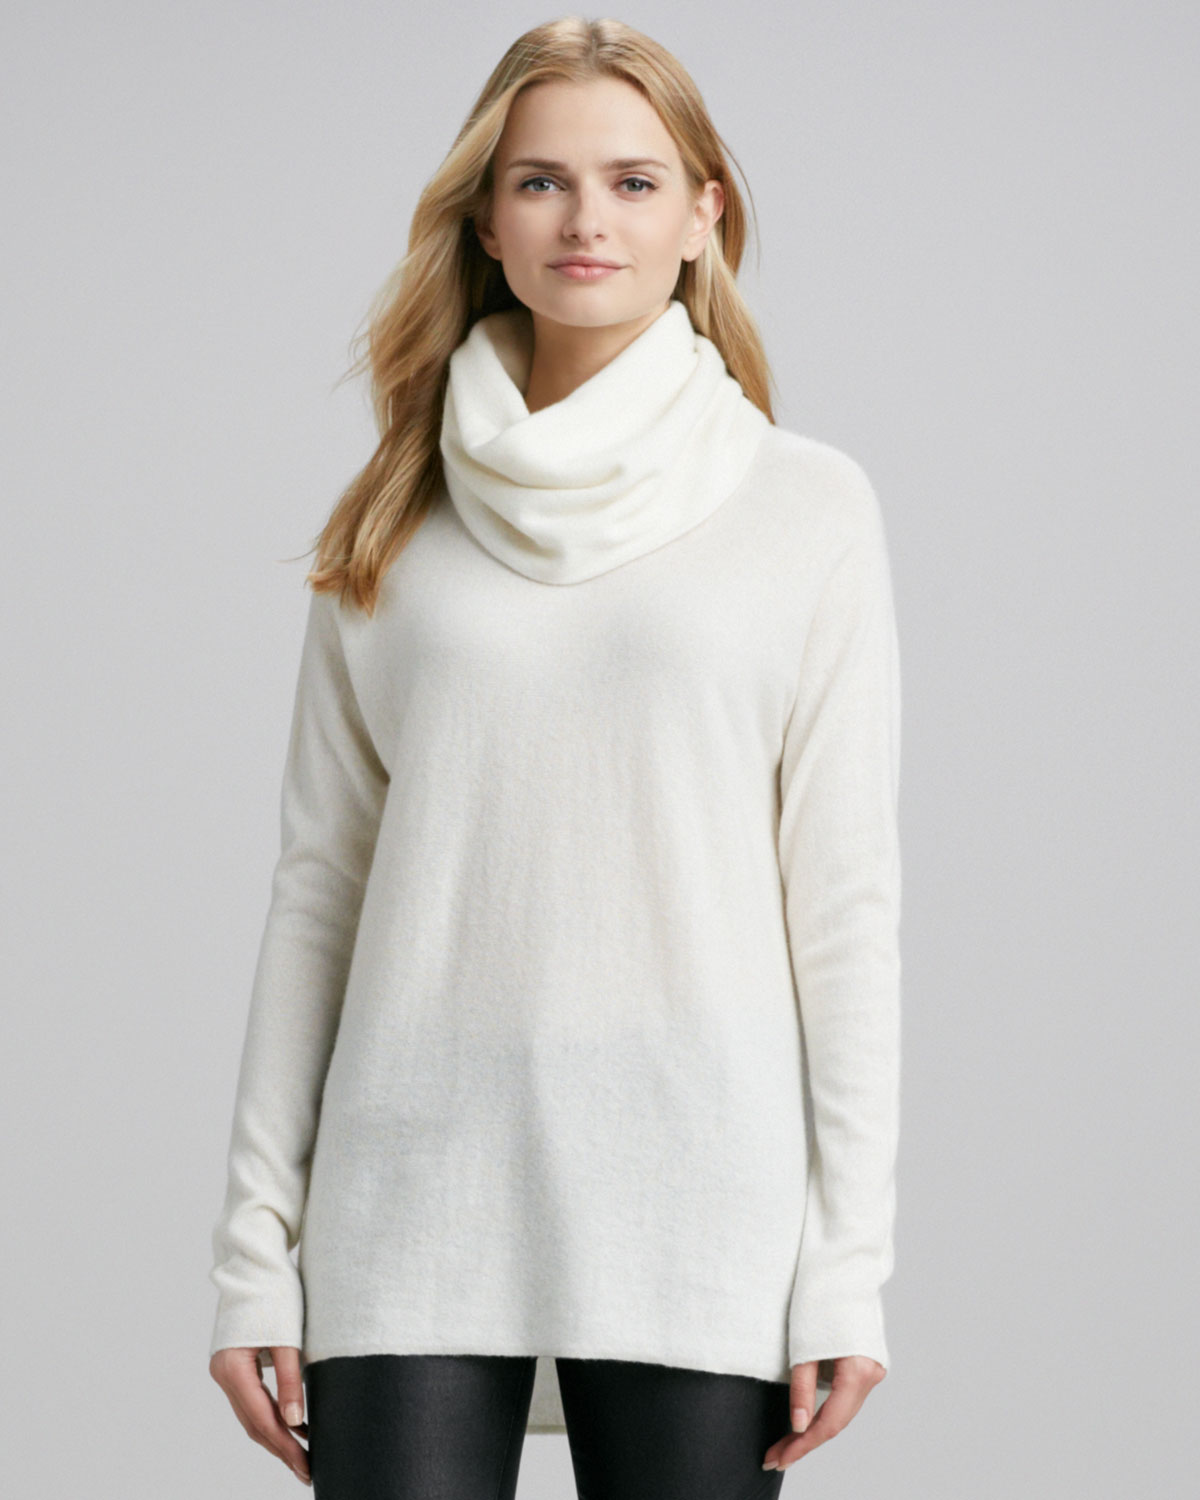 Womens White Pullover Sweater